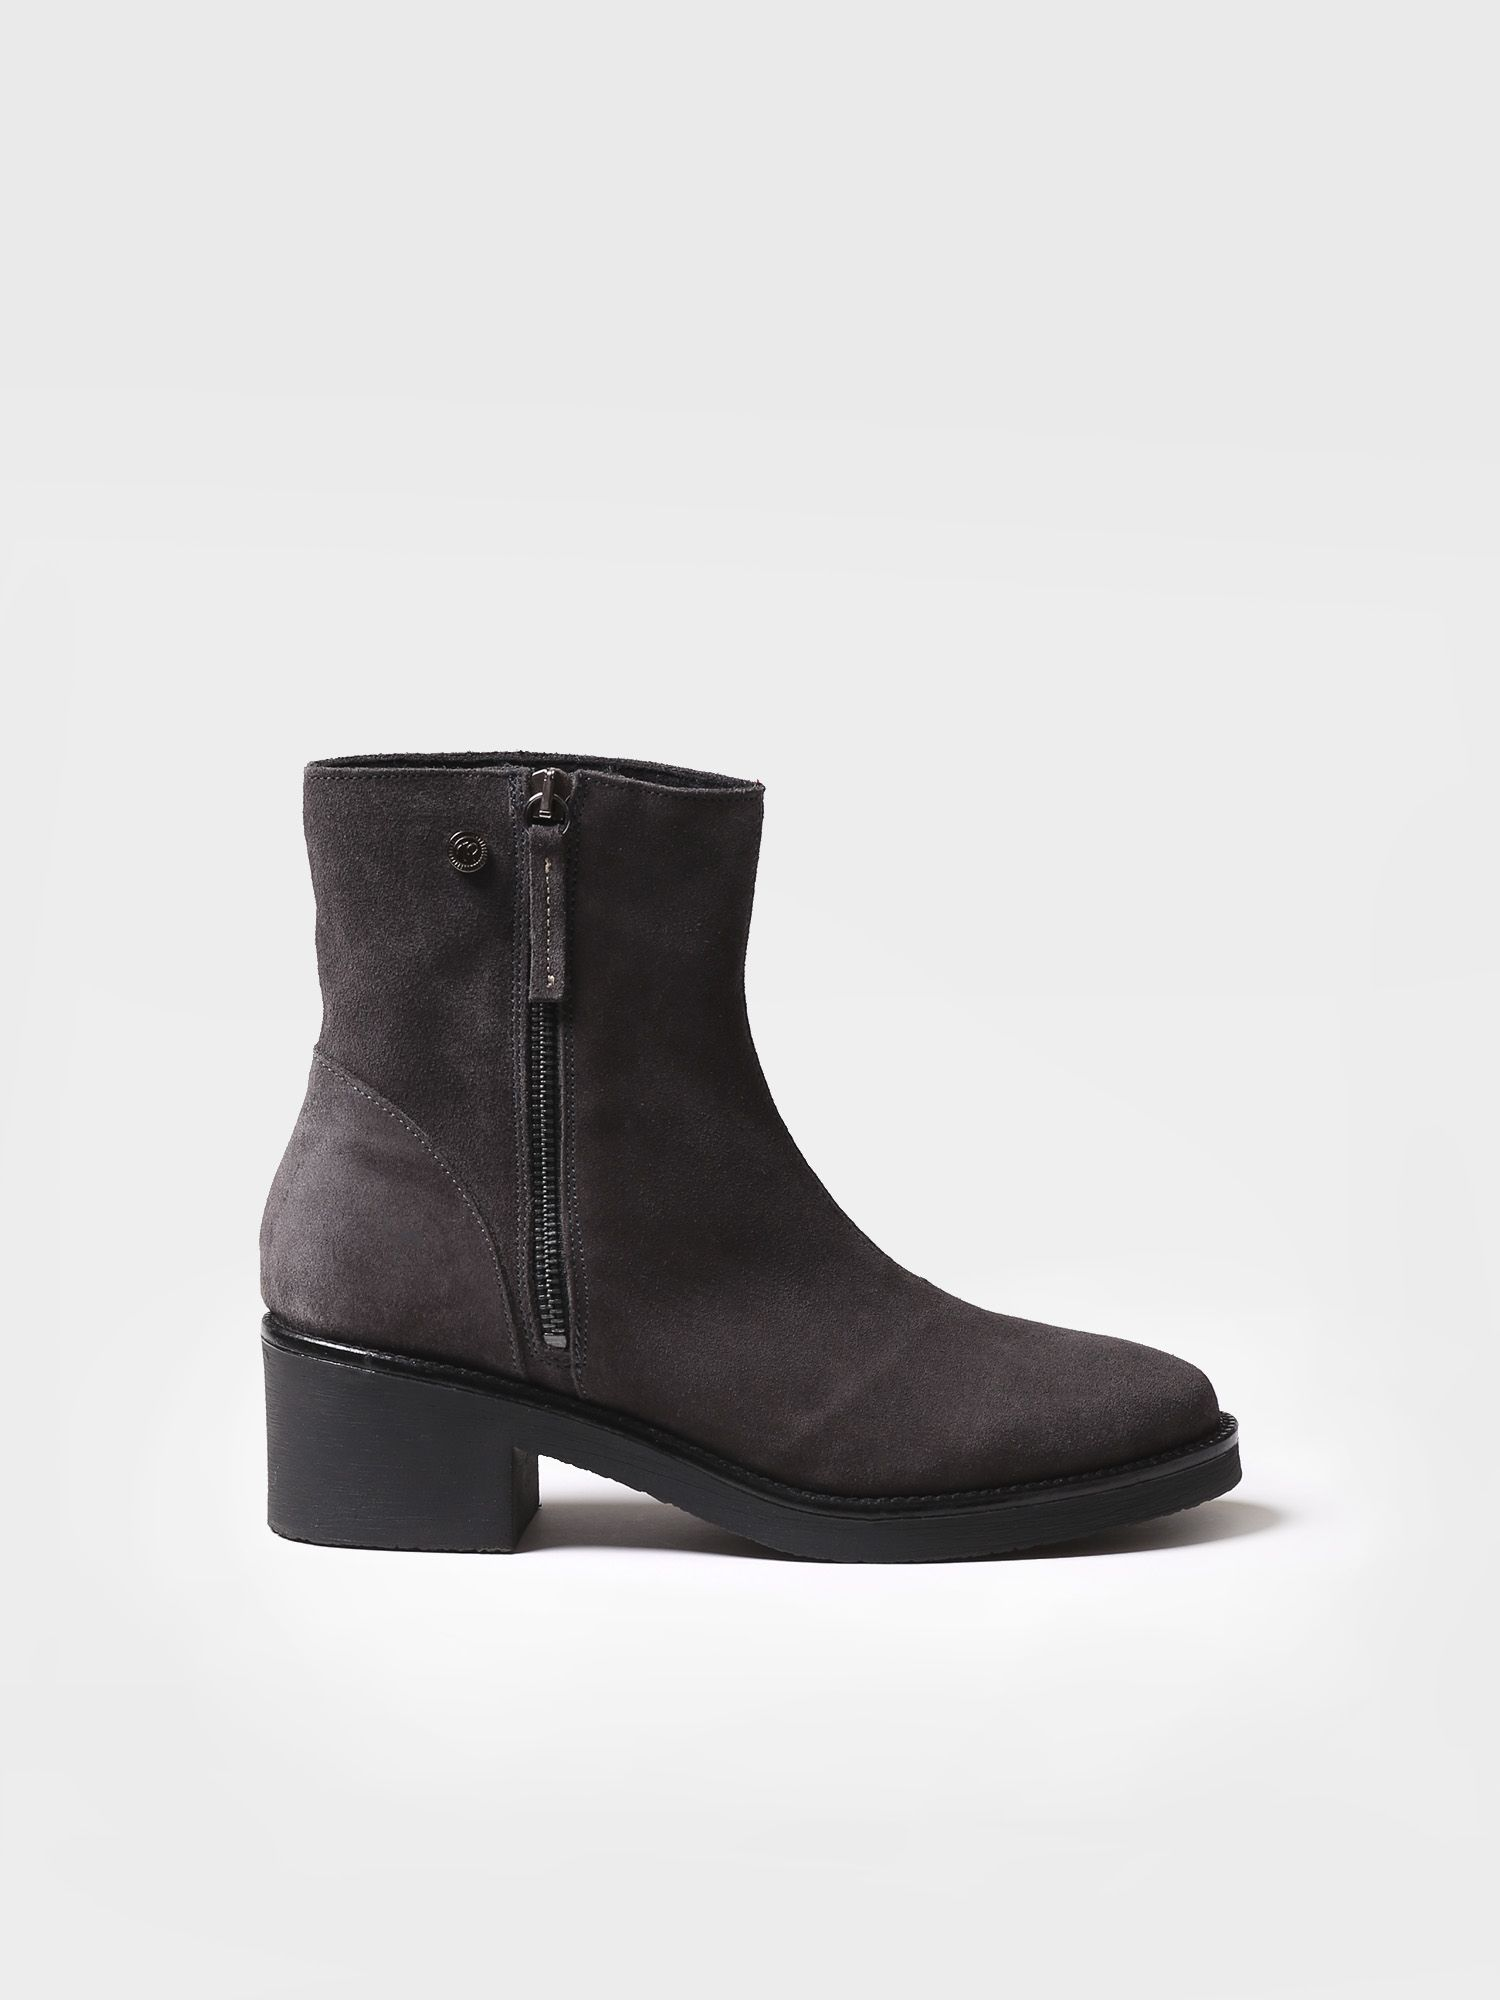 Ankle boot for women made of suede - PRATO-SY